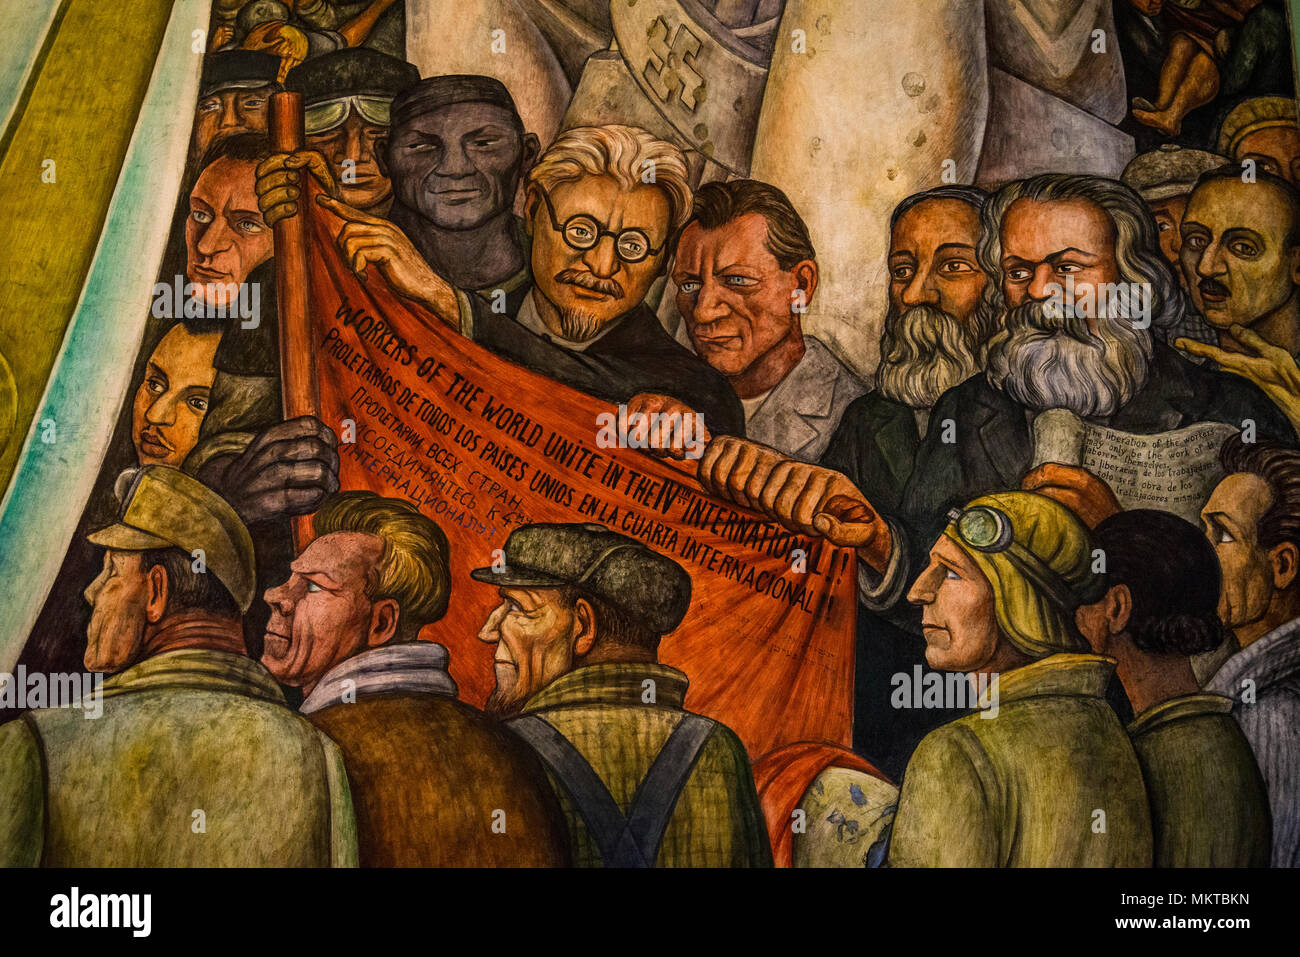 leon trotsky in the mural by diego rivera man at the